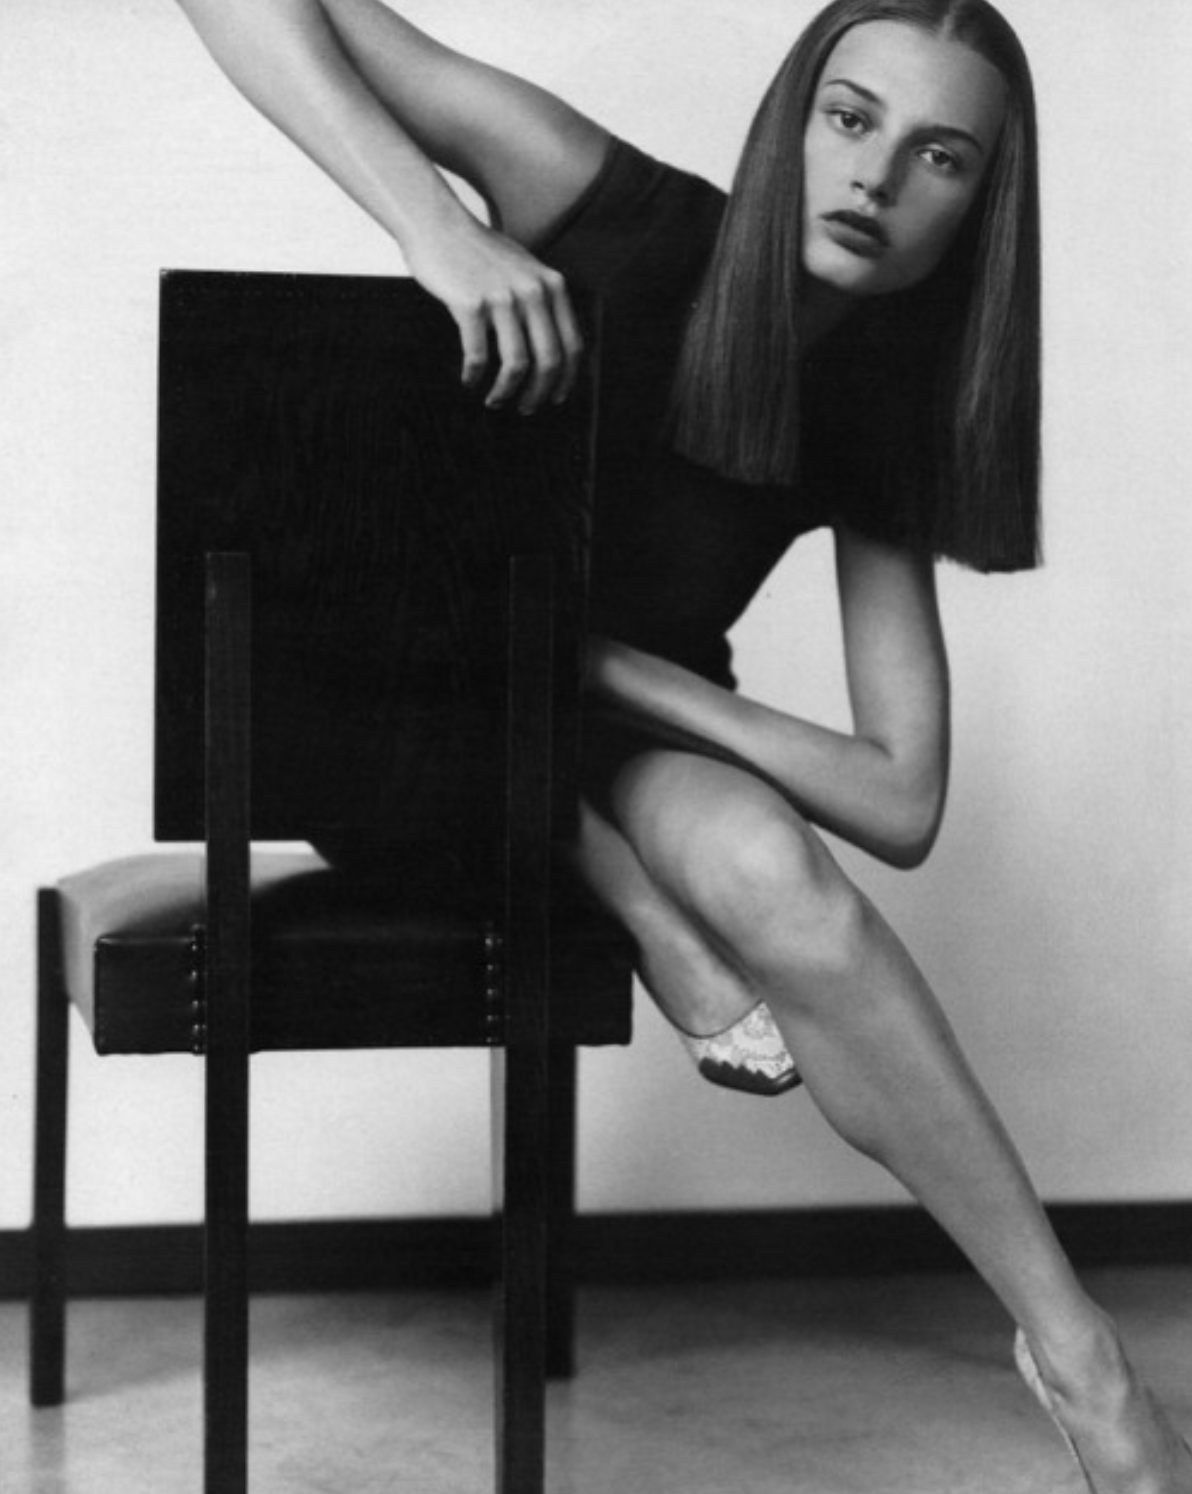 Bridget Hall photographed by Kelly Klein for Vogue Russia, September 1998